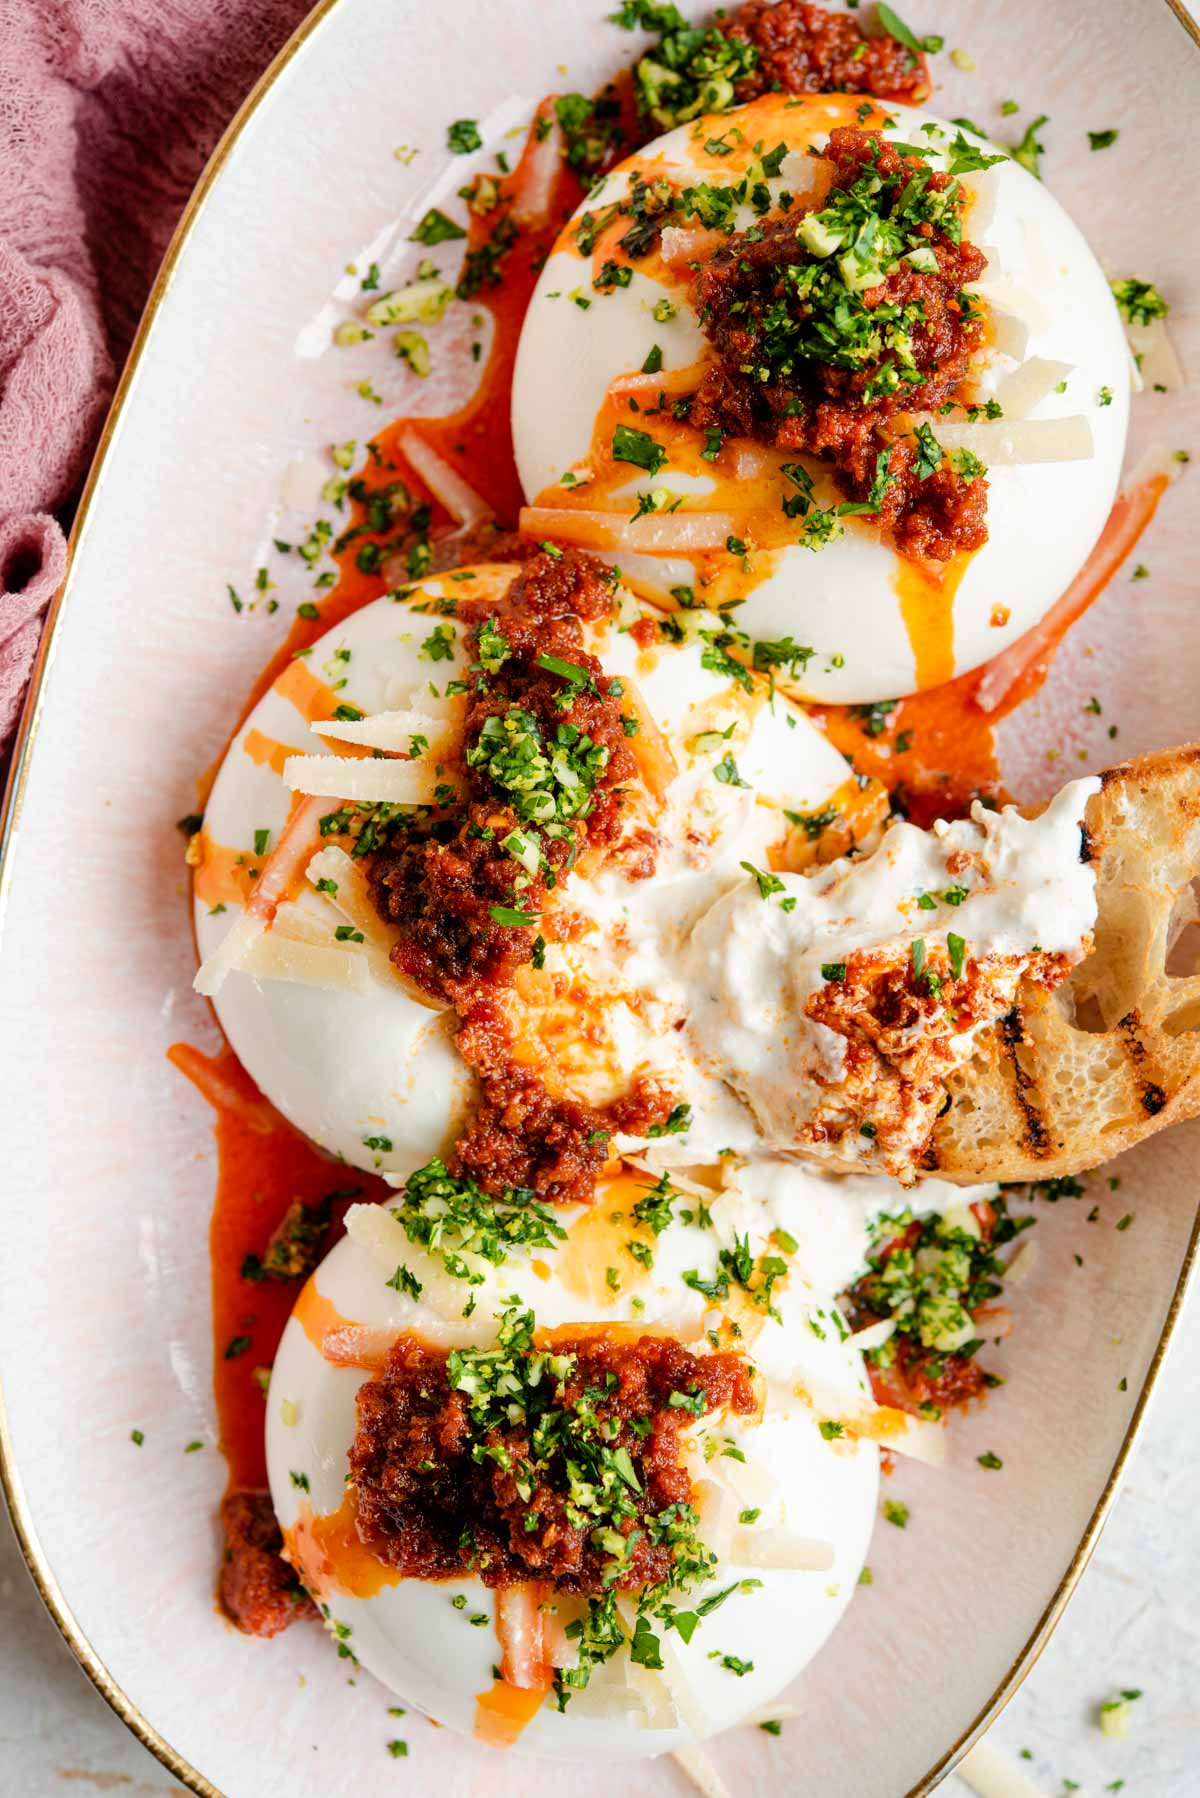 An overhead shot of burrata on a serving plate with 'Nduja and gremolata